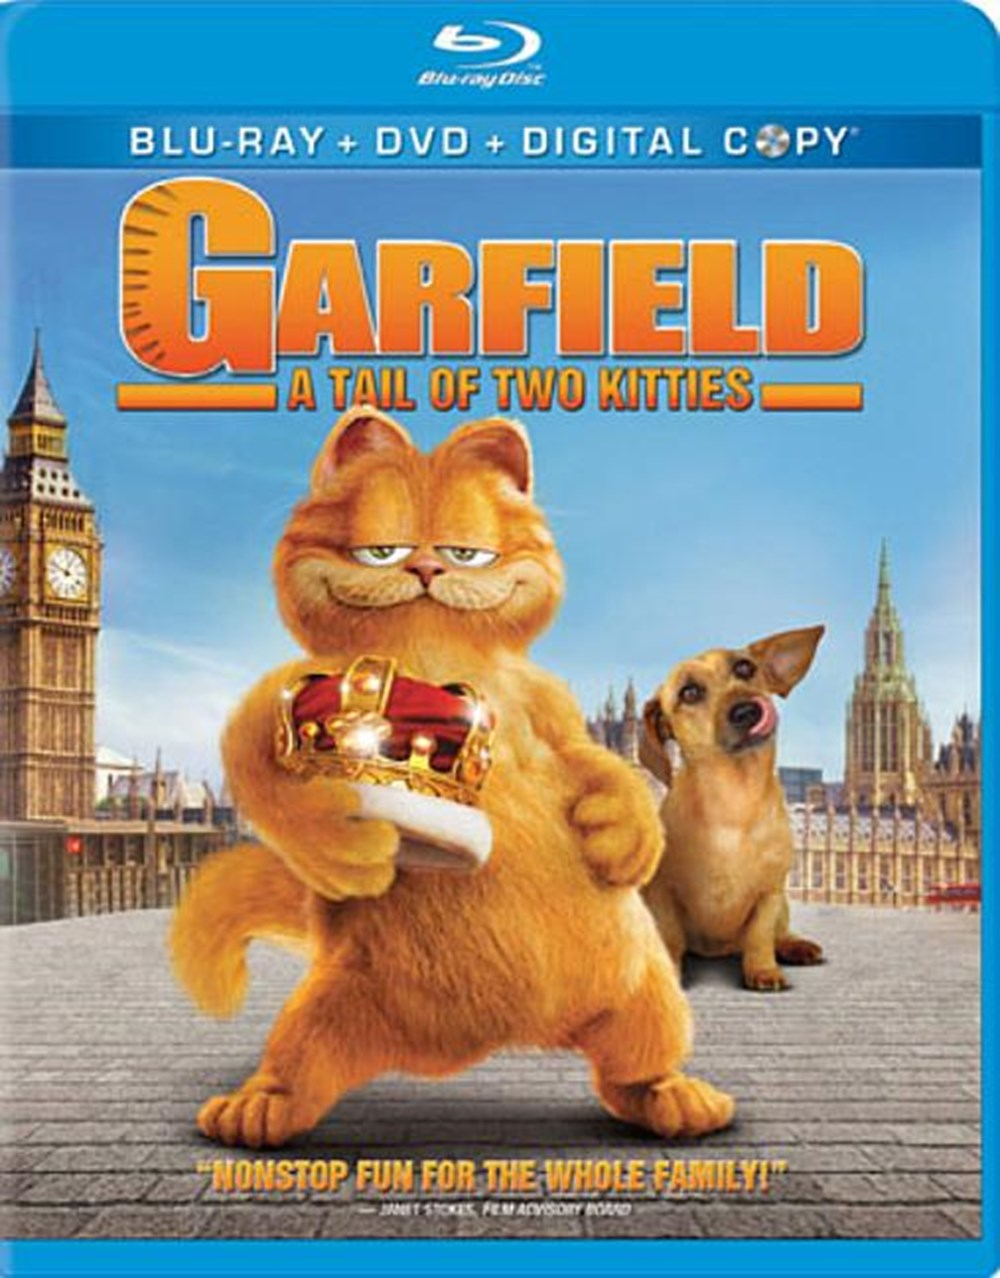 Garfield A Tail of Two Kitties (DVD & Digital Copy Included)